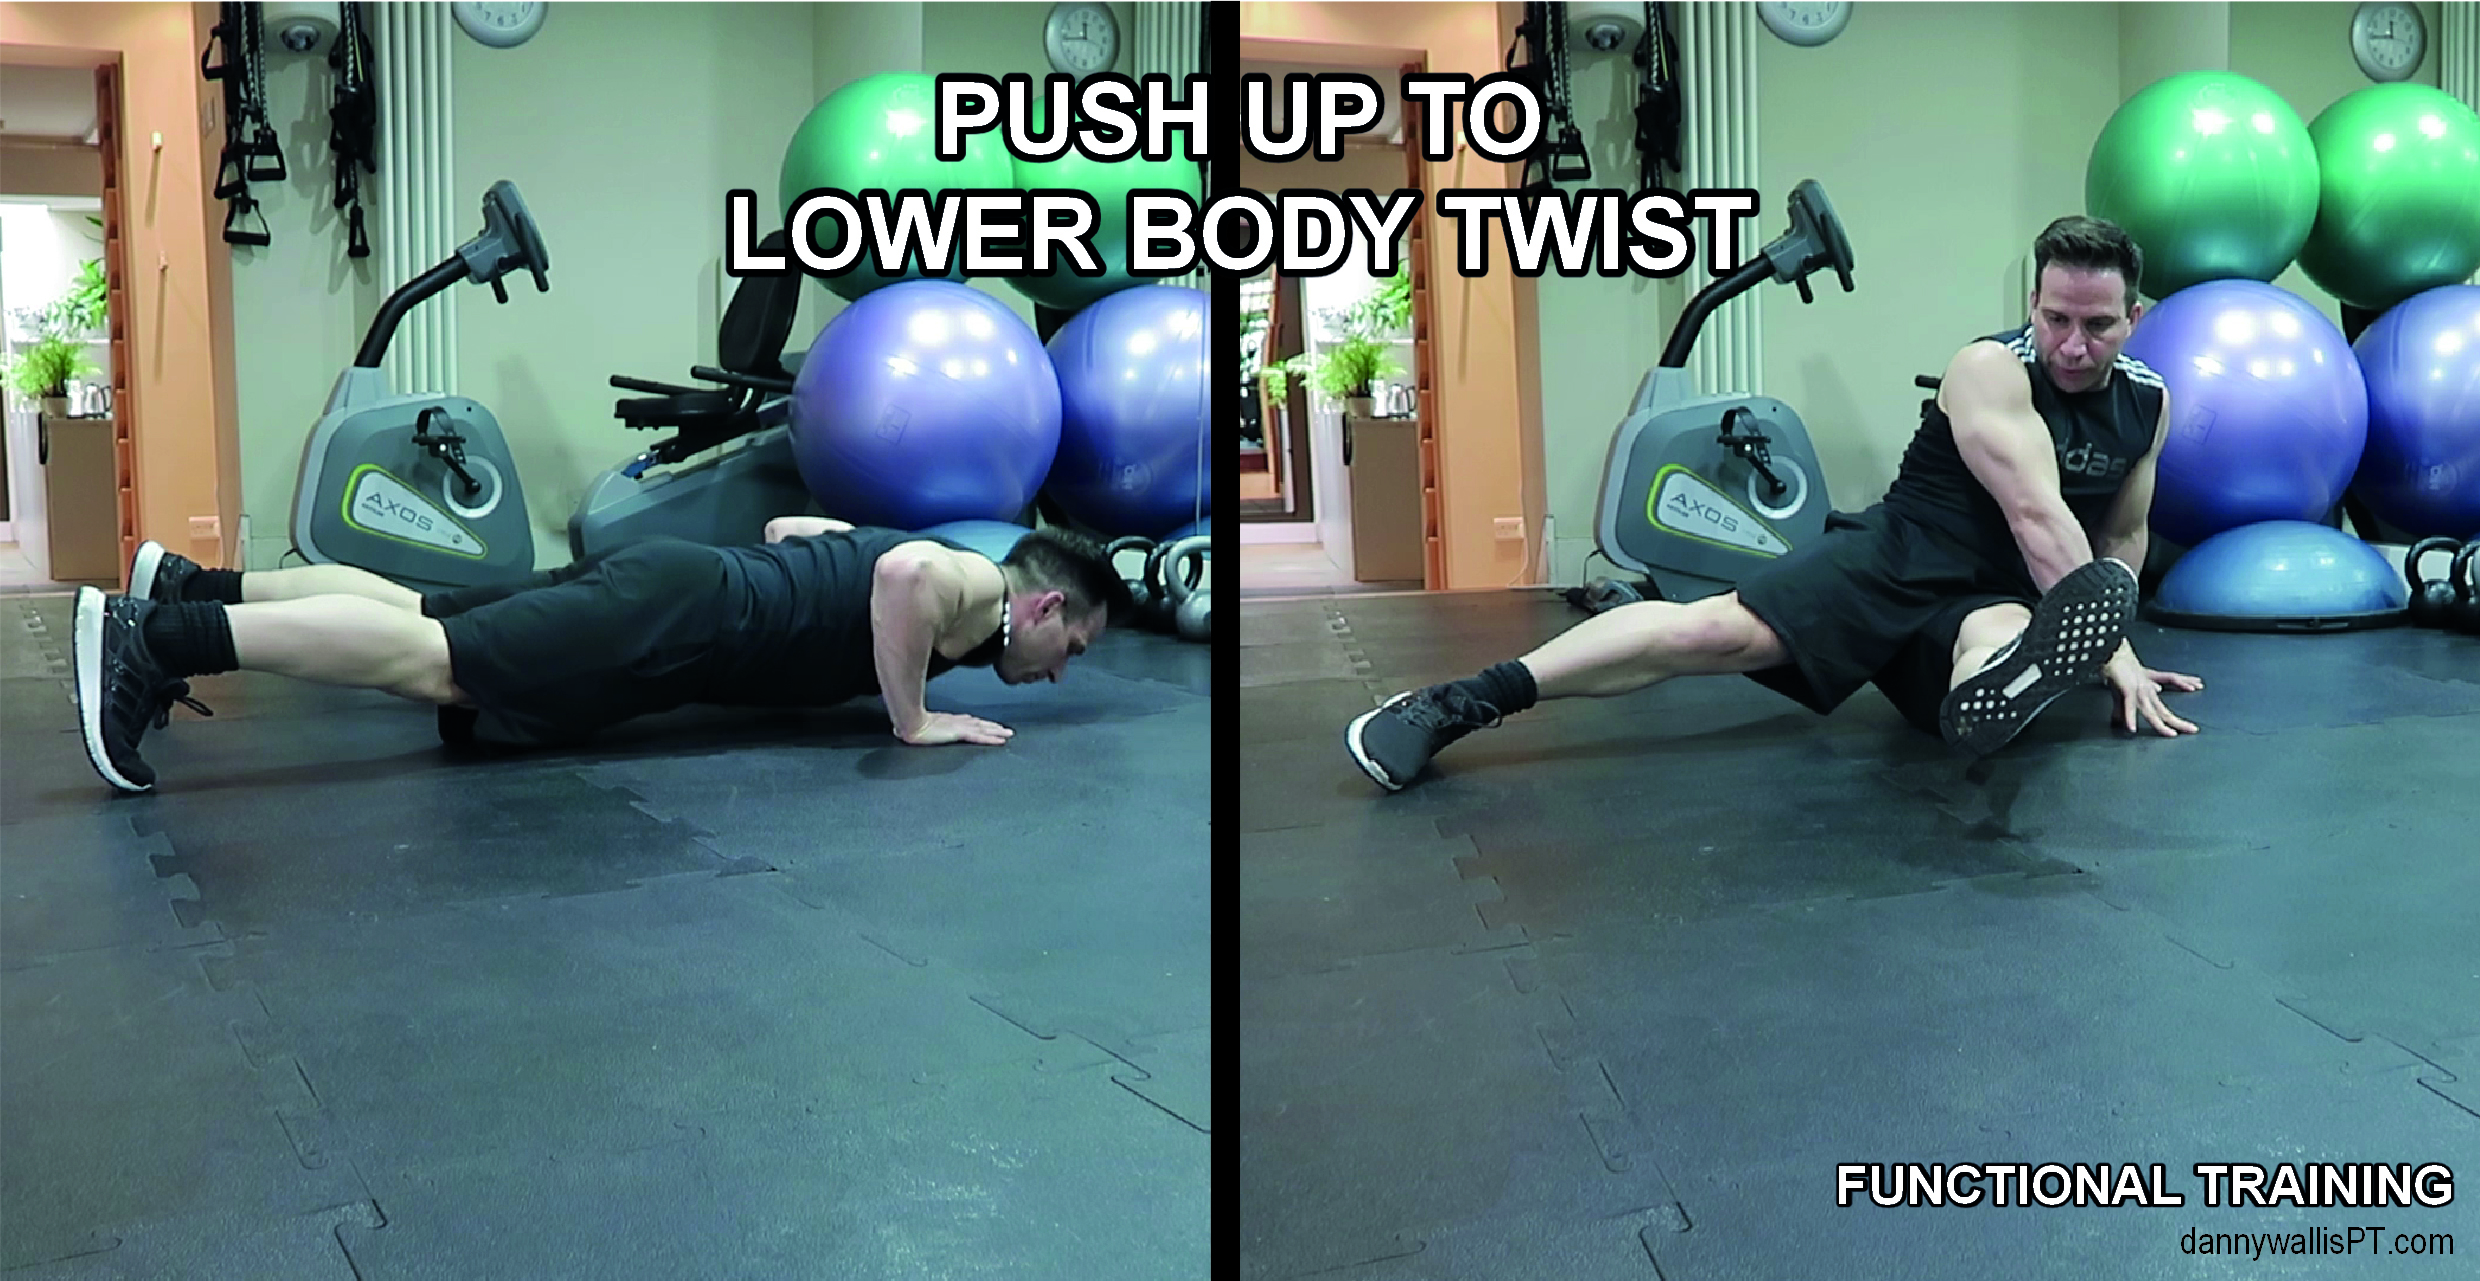 push up to lower body twist functional training blog post